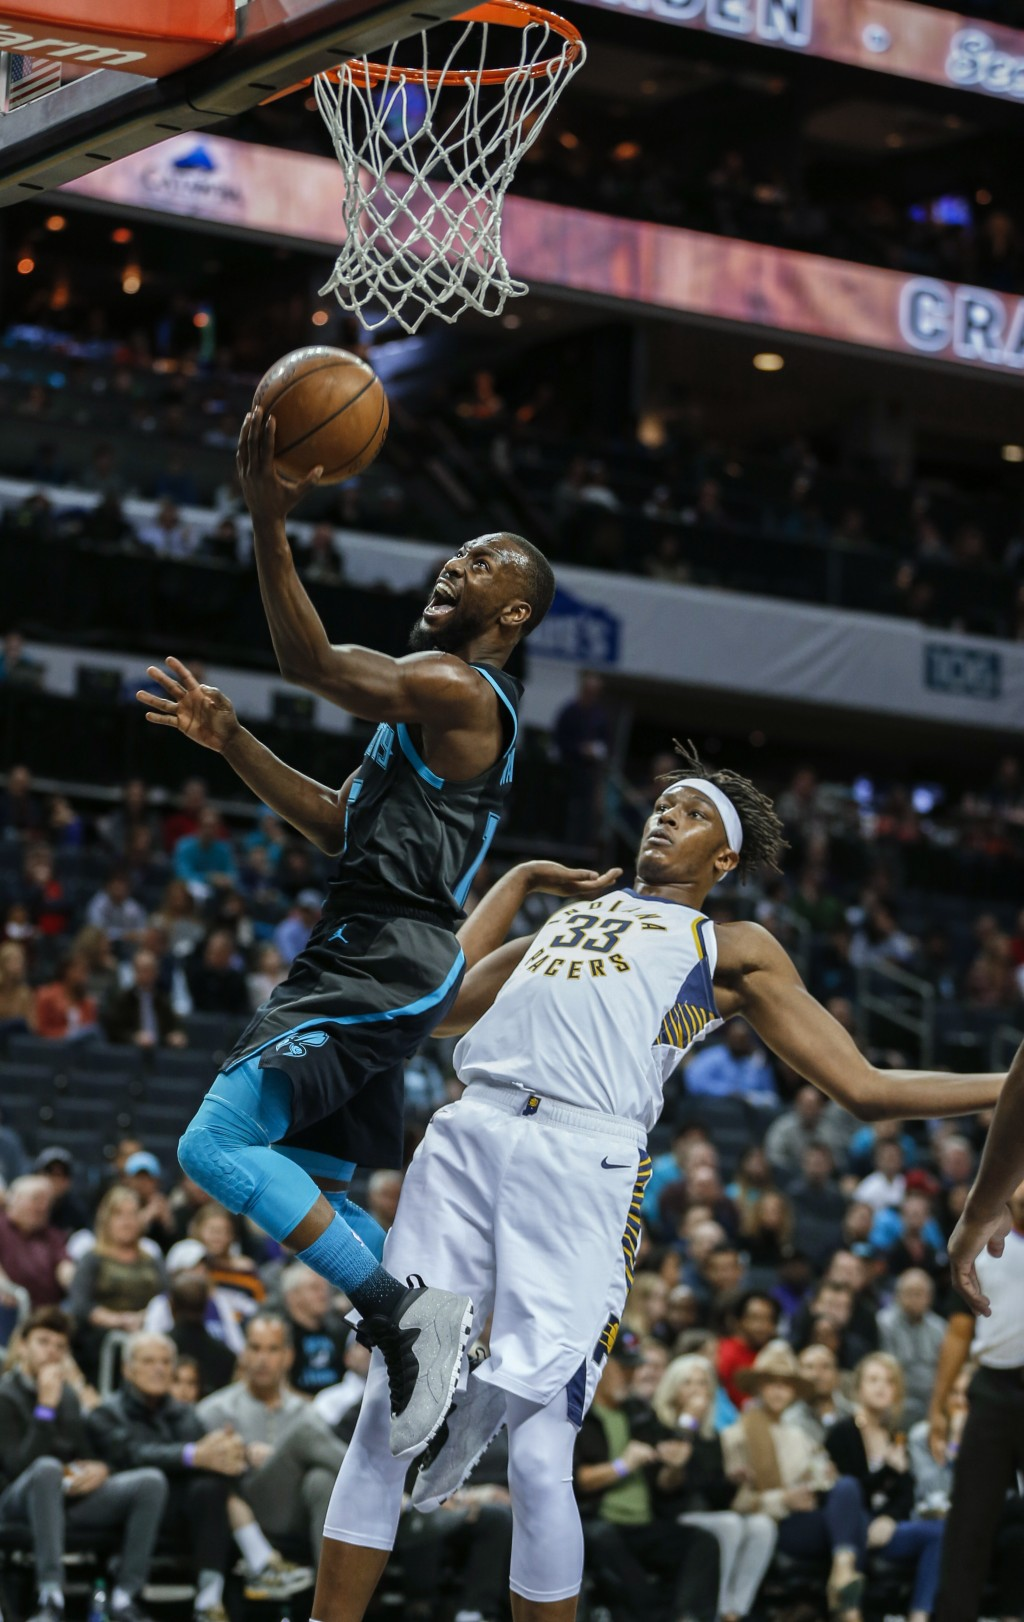 Charlotte Hornets guard Kemba Walker, left, drives to the basket in front of Indiana Pacers center Myles Turner during the first half of an NBA basket